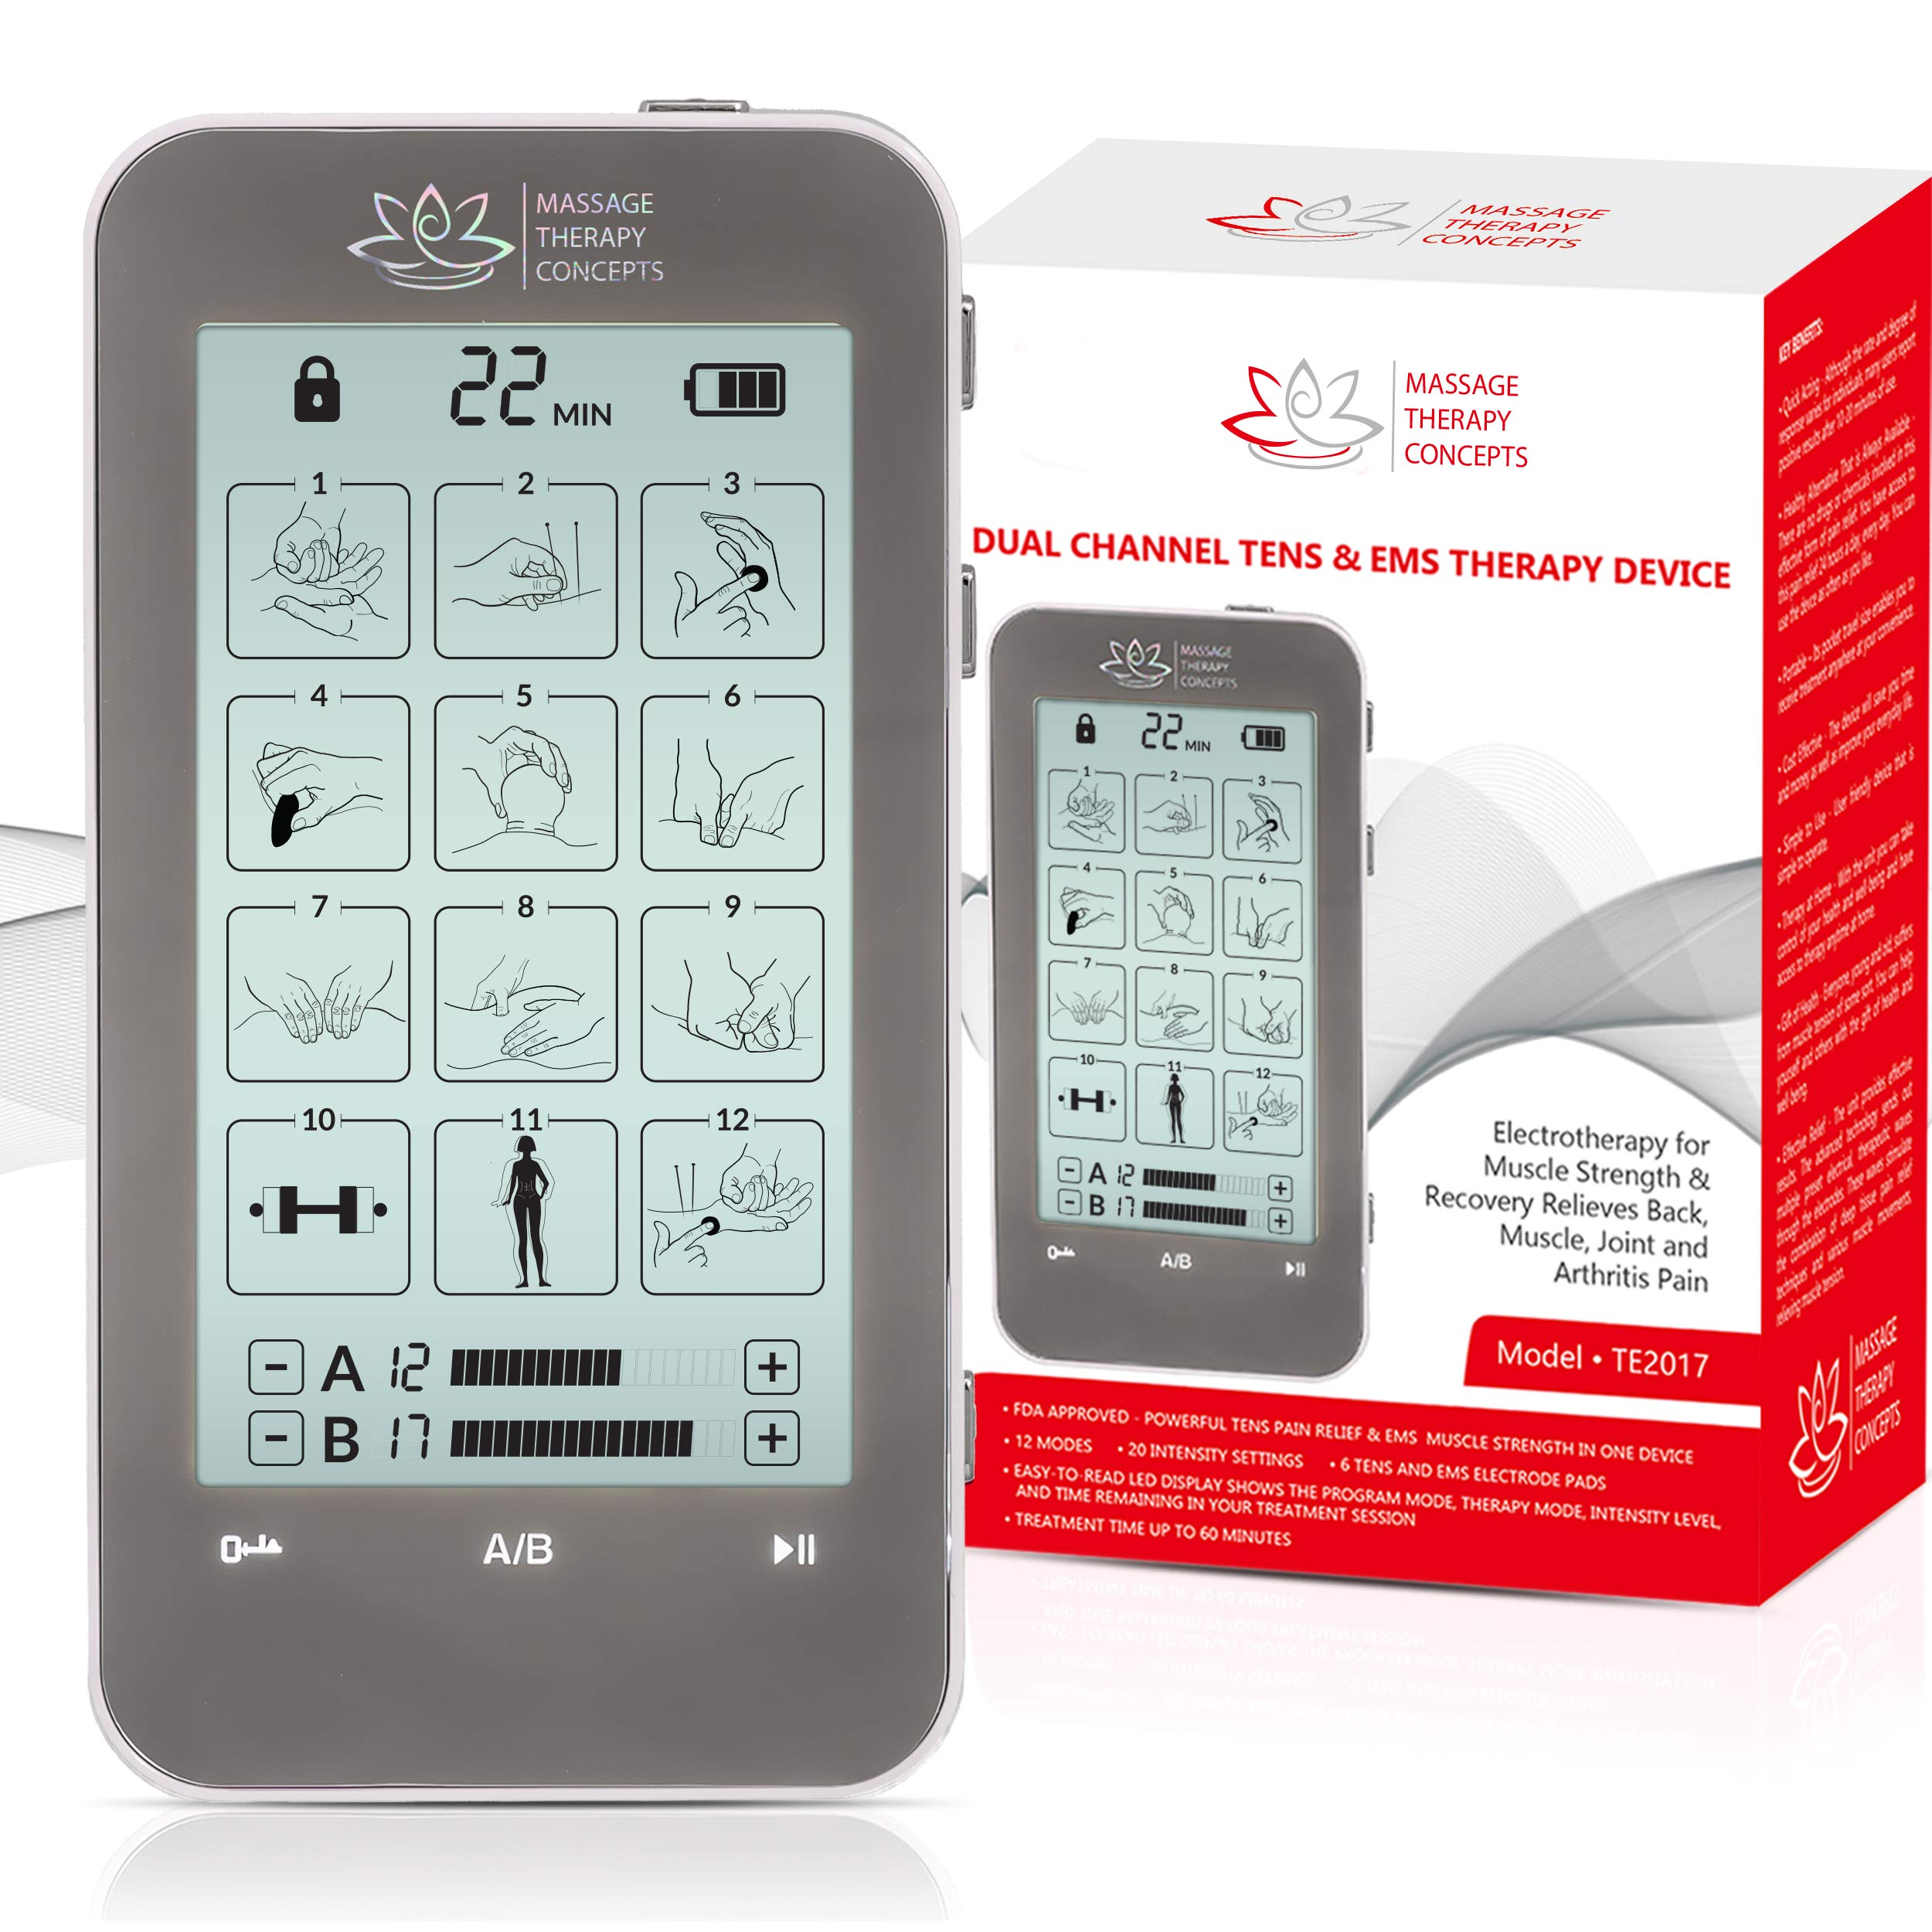 TENS Unit and EMS Combination Muscle Stimulator with 2 Channels, 12 Modes for Pain Management for Back, Neck, Arms, Legs, Abs, and Muscle Rehabilitation by Massage Therapy Concepts